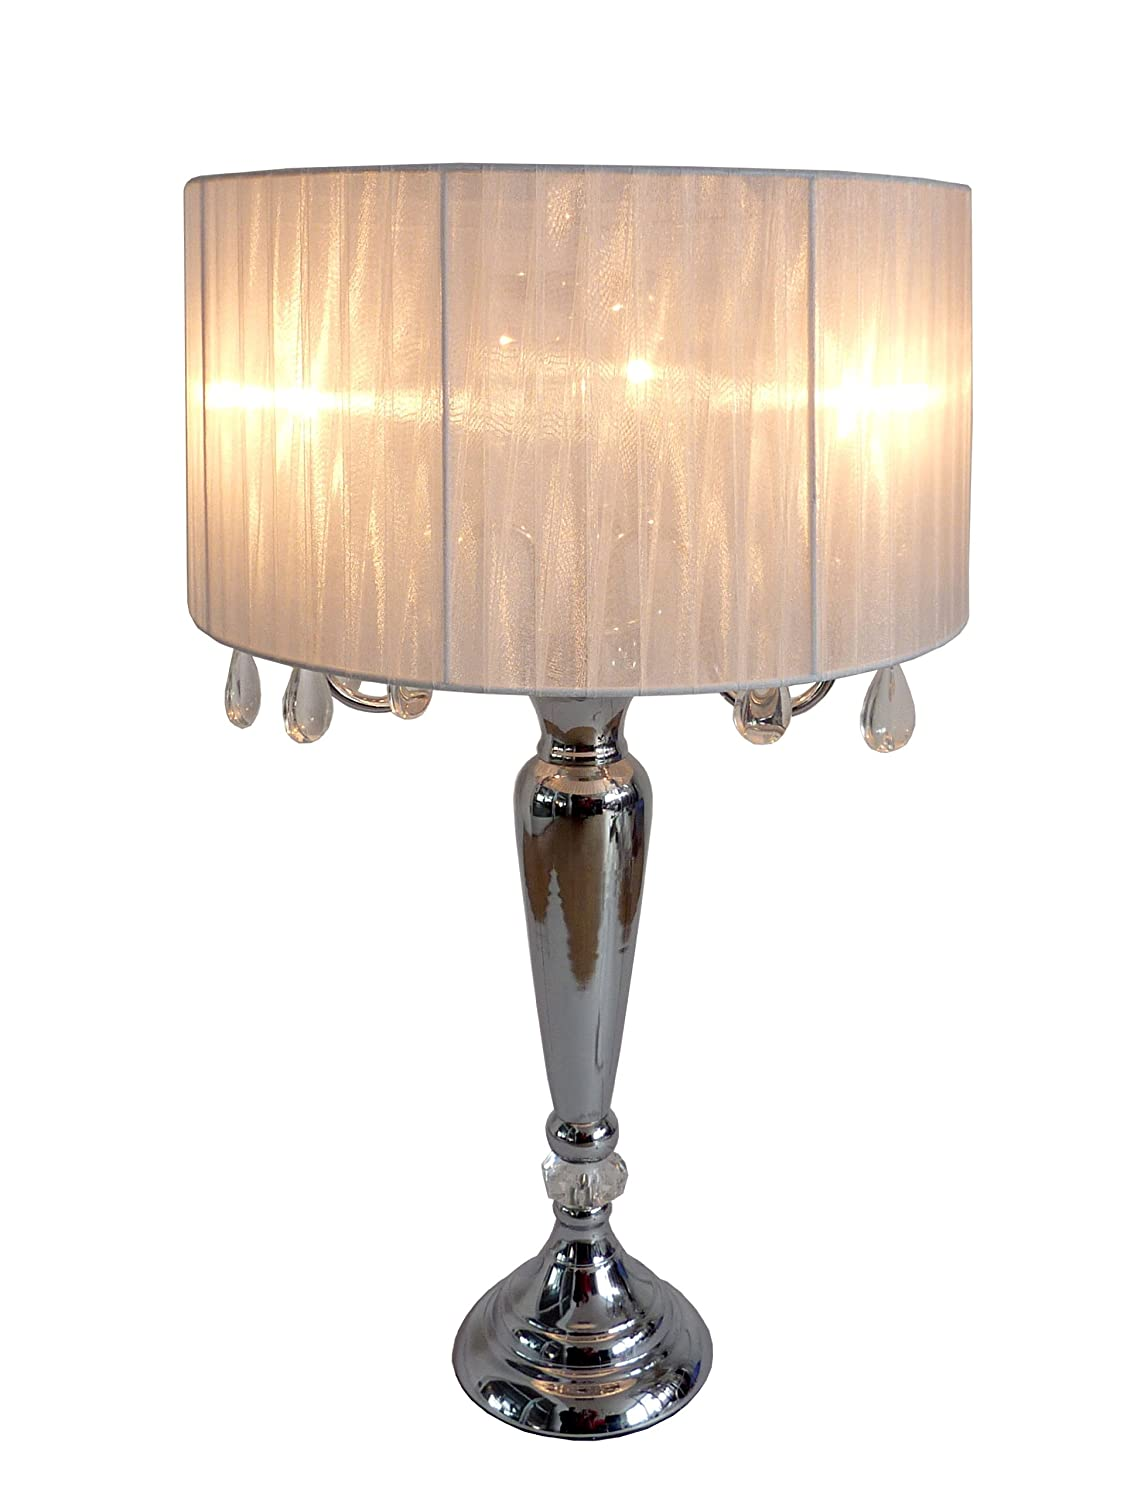 Elegant Designs LT1034 WHT Trendy Sheer Table Lamp With Hanging Crystals  And Sheer Shade, White     Amazon.com